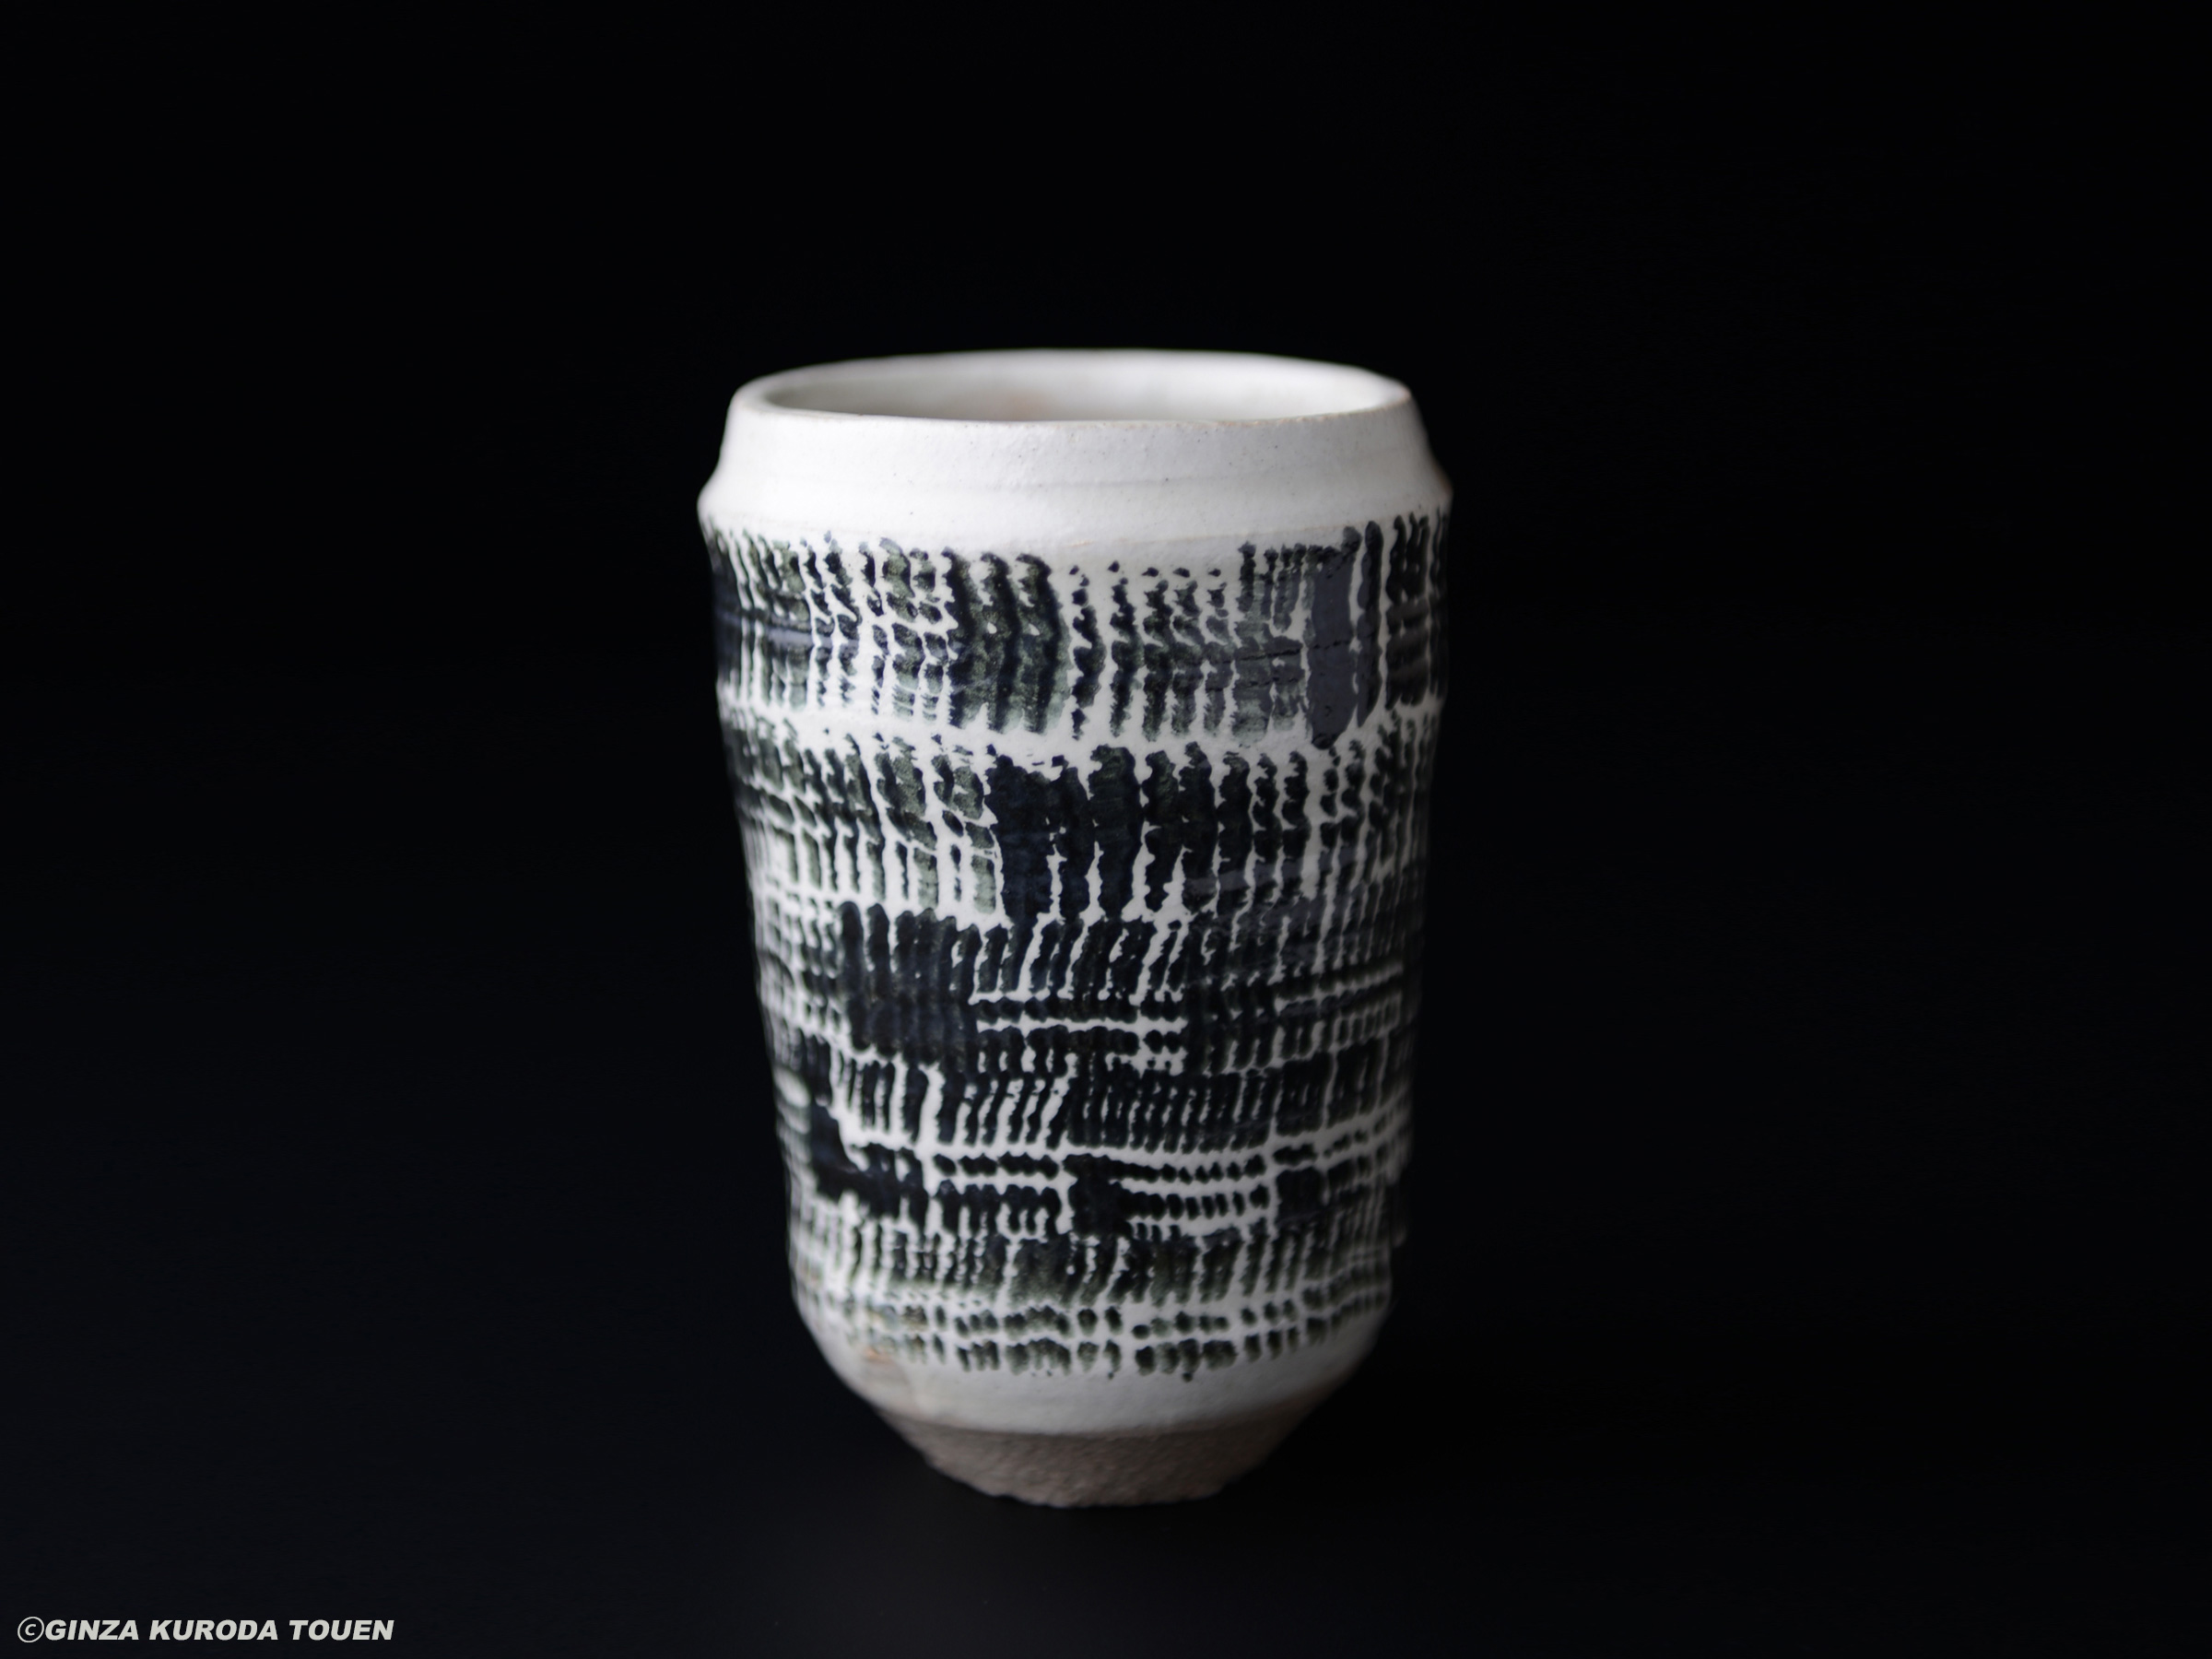 Munemaro Ishiguro: Small Jar, Black on white glaze, straw‐rope pattern